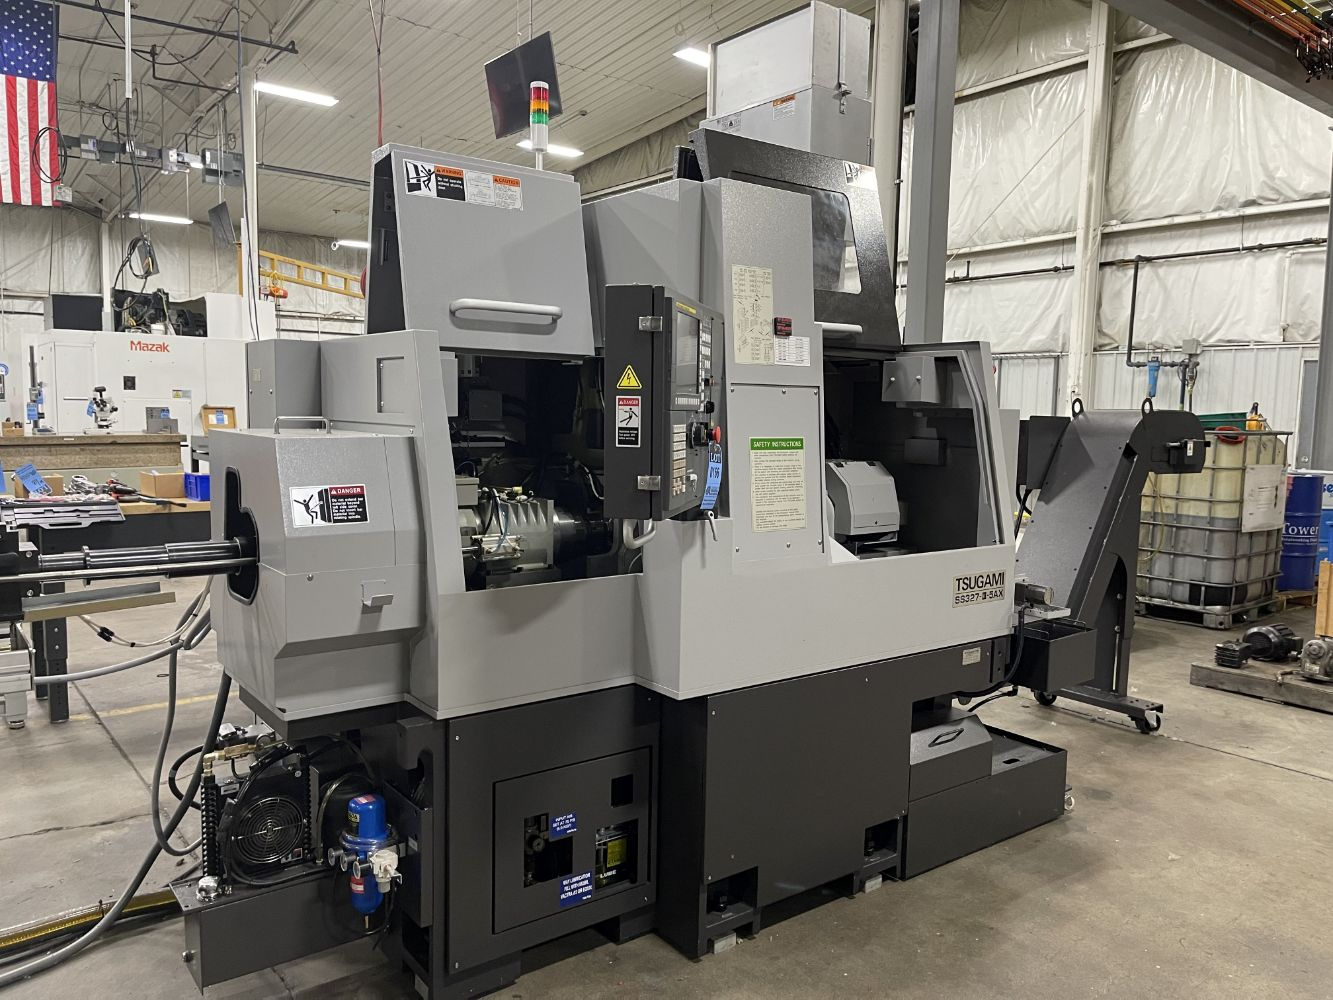 True Die, Inc. - Extremely Clean Tool Shop, Machinery as New as 2020